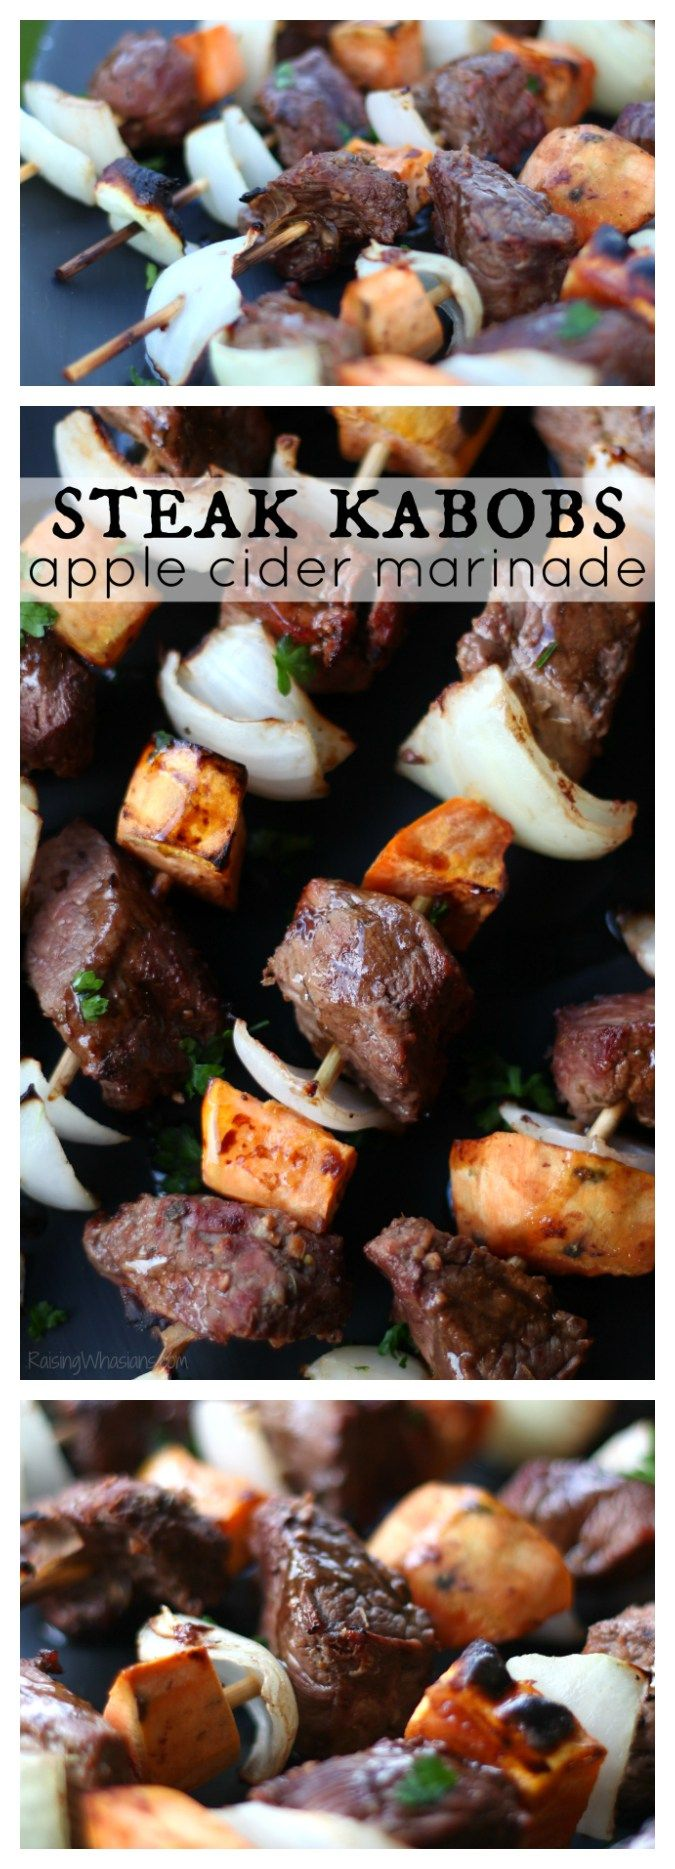 Fall Steak Kabobs with Apple Cider Marinade | Easy fall grilling recipe + Join the 30 Day#ProteinChallenge ad